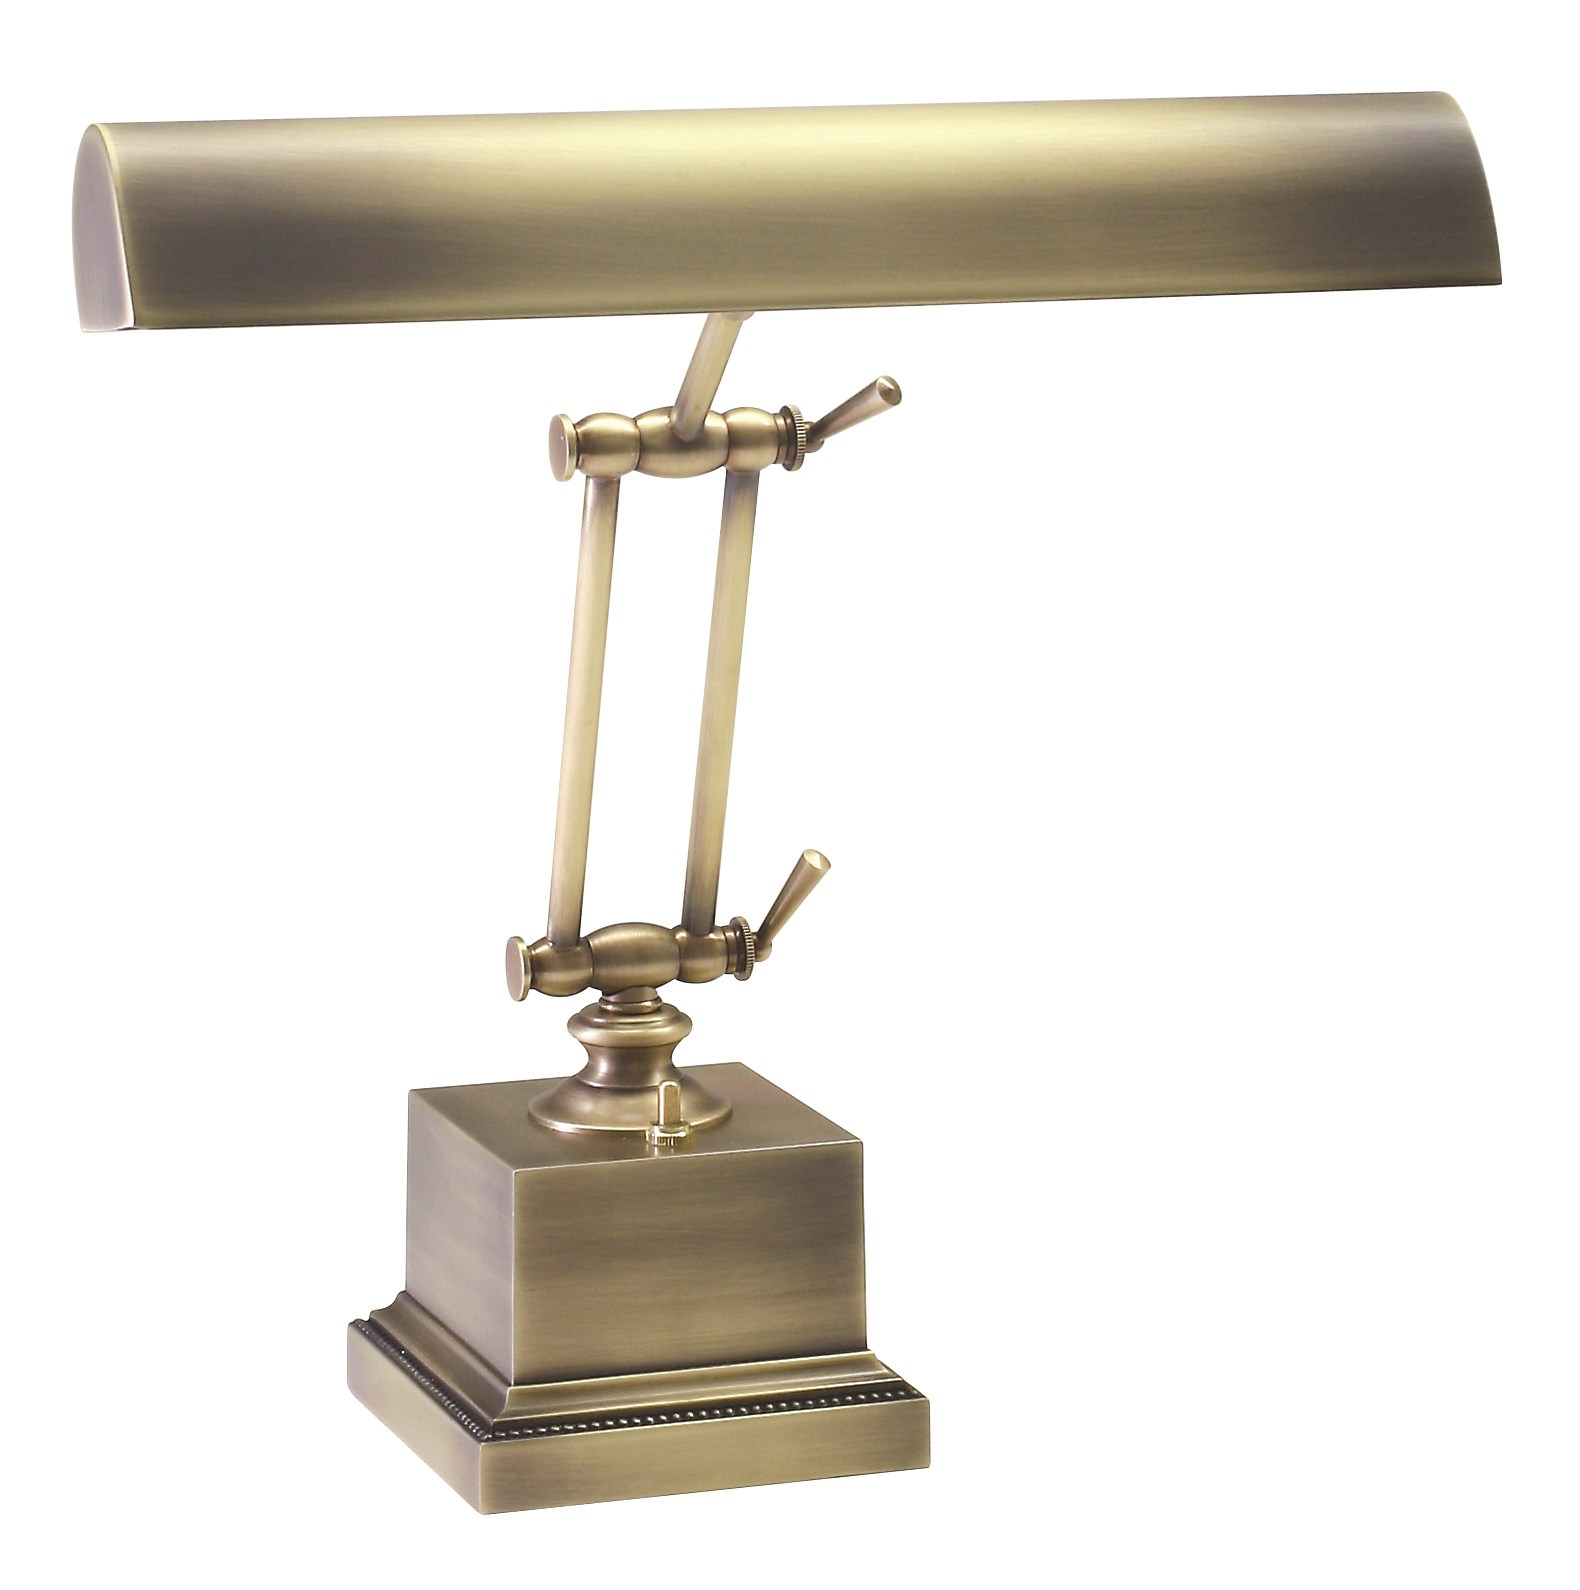 House of troy p14 202 ab piano desk lamp contemporary -